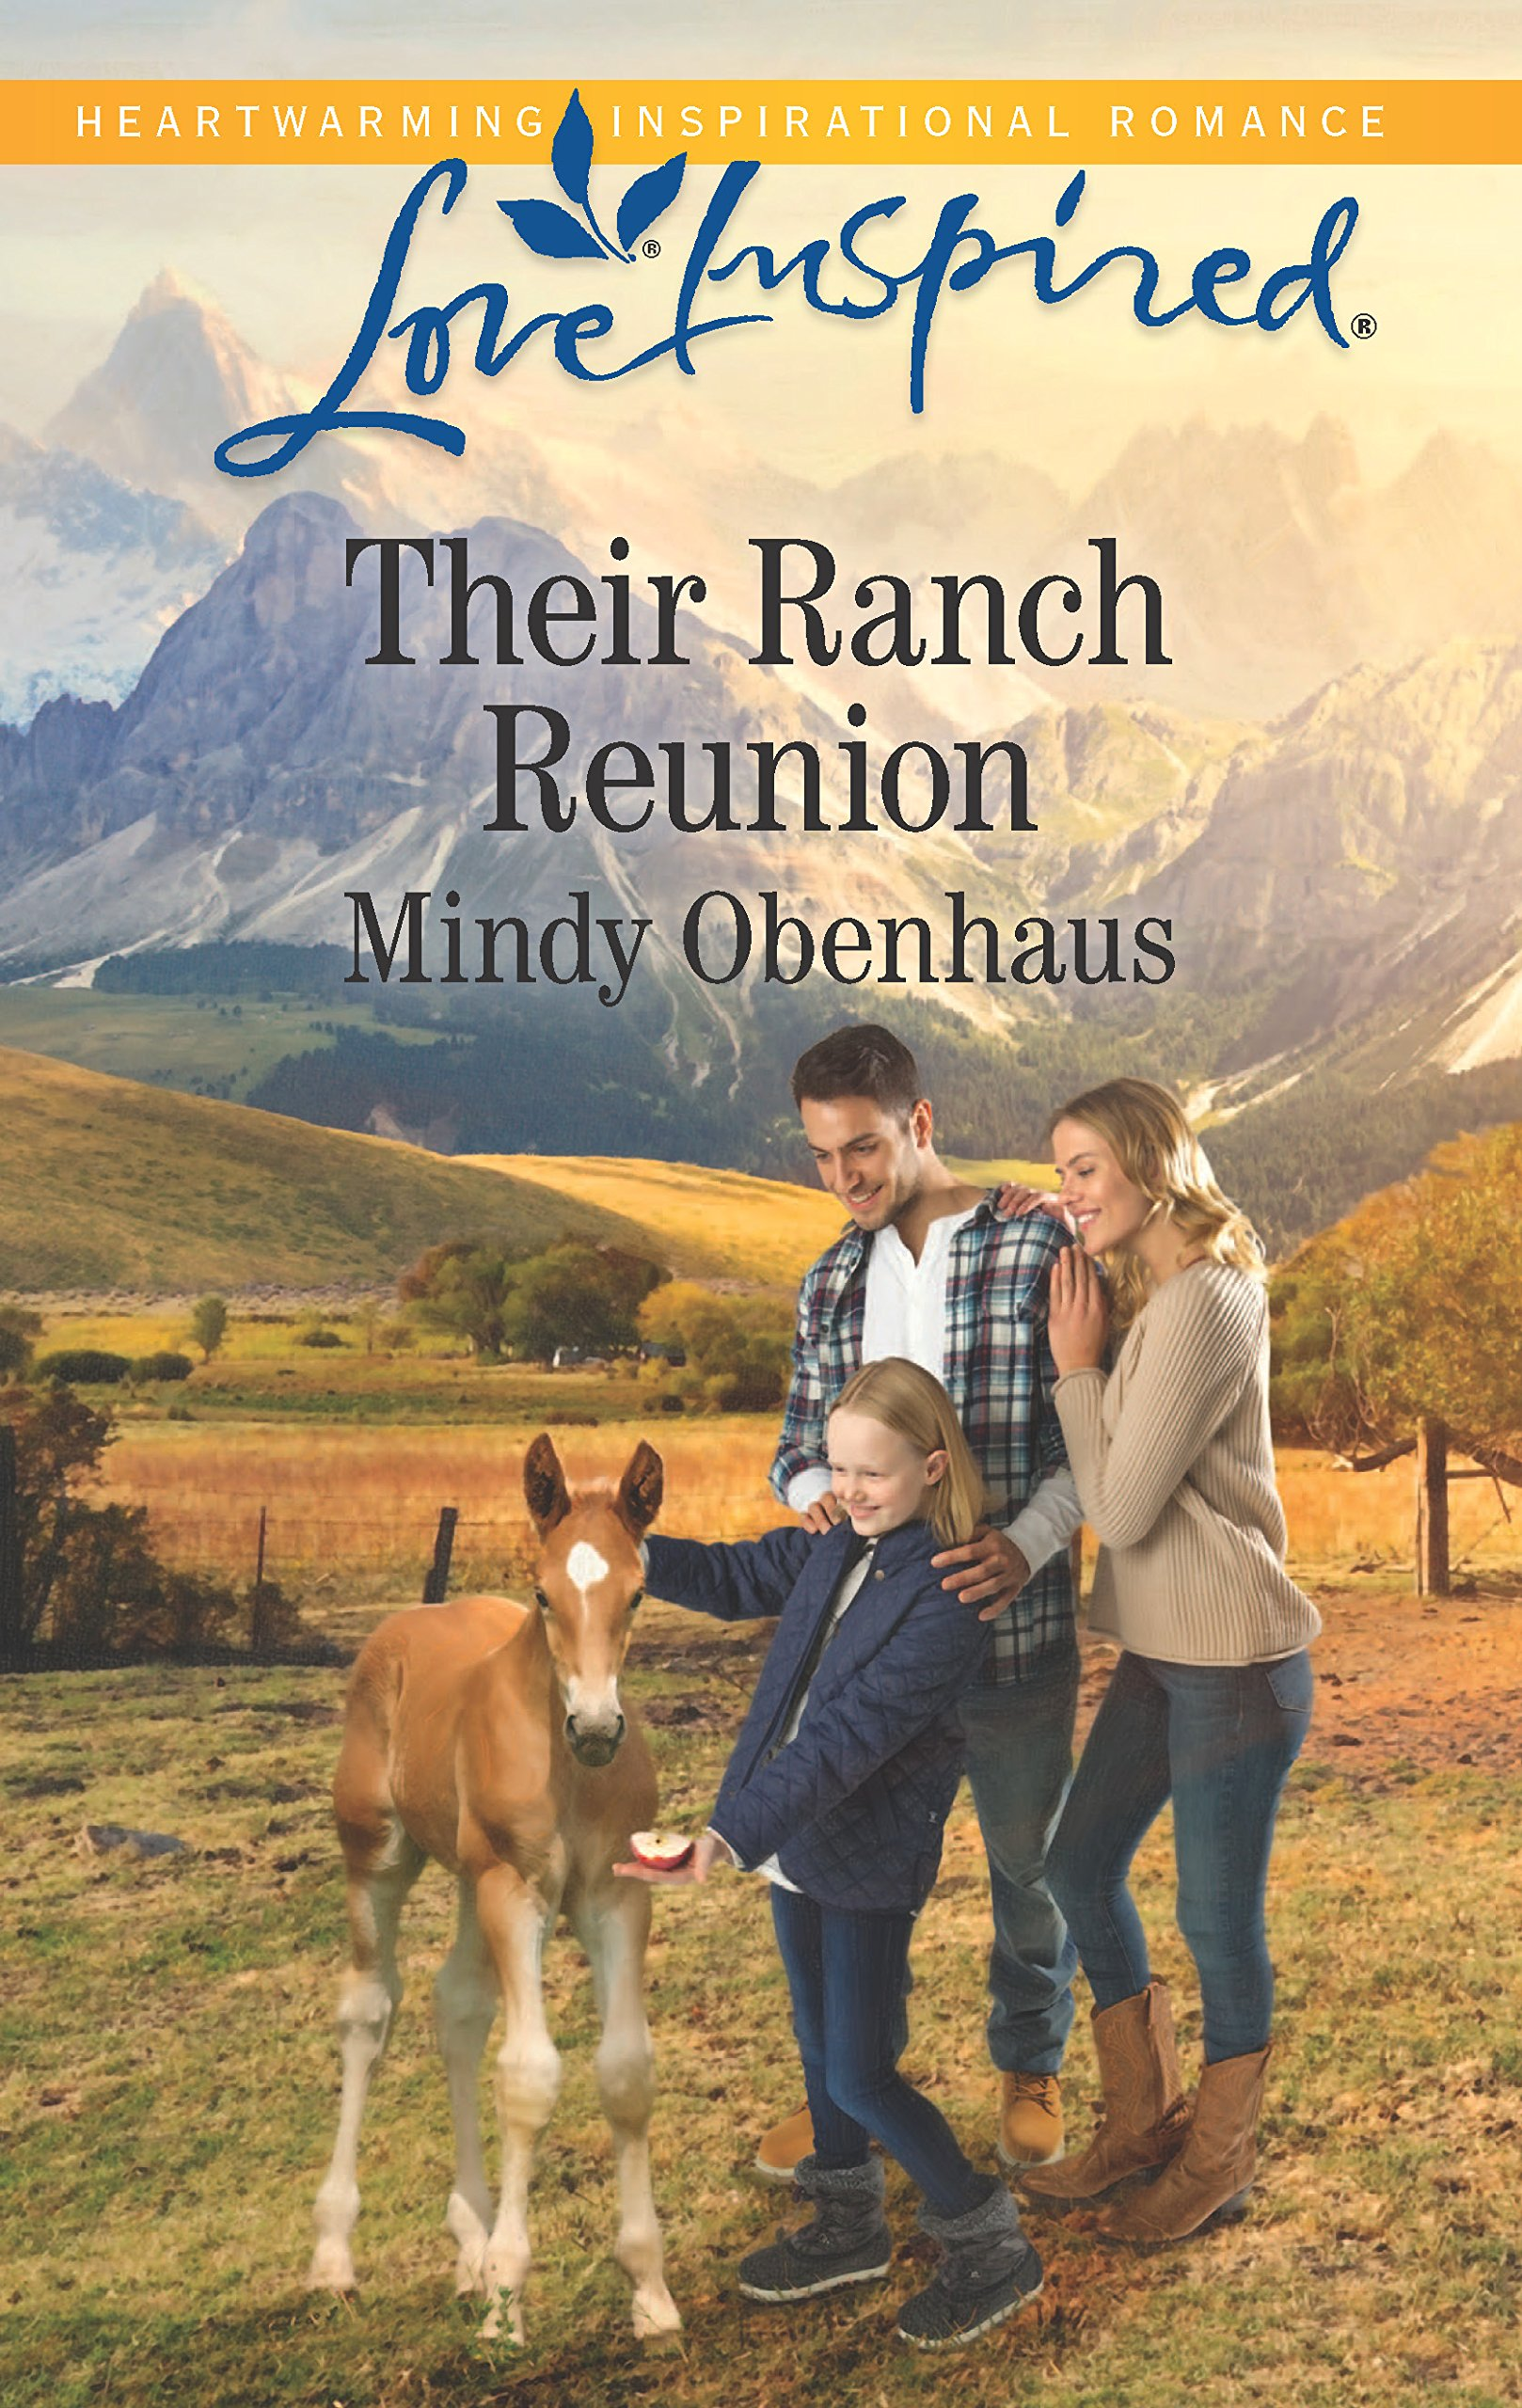 Their Ranch Reunion (Rocky Mountain Heroes) by Love Inspired